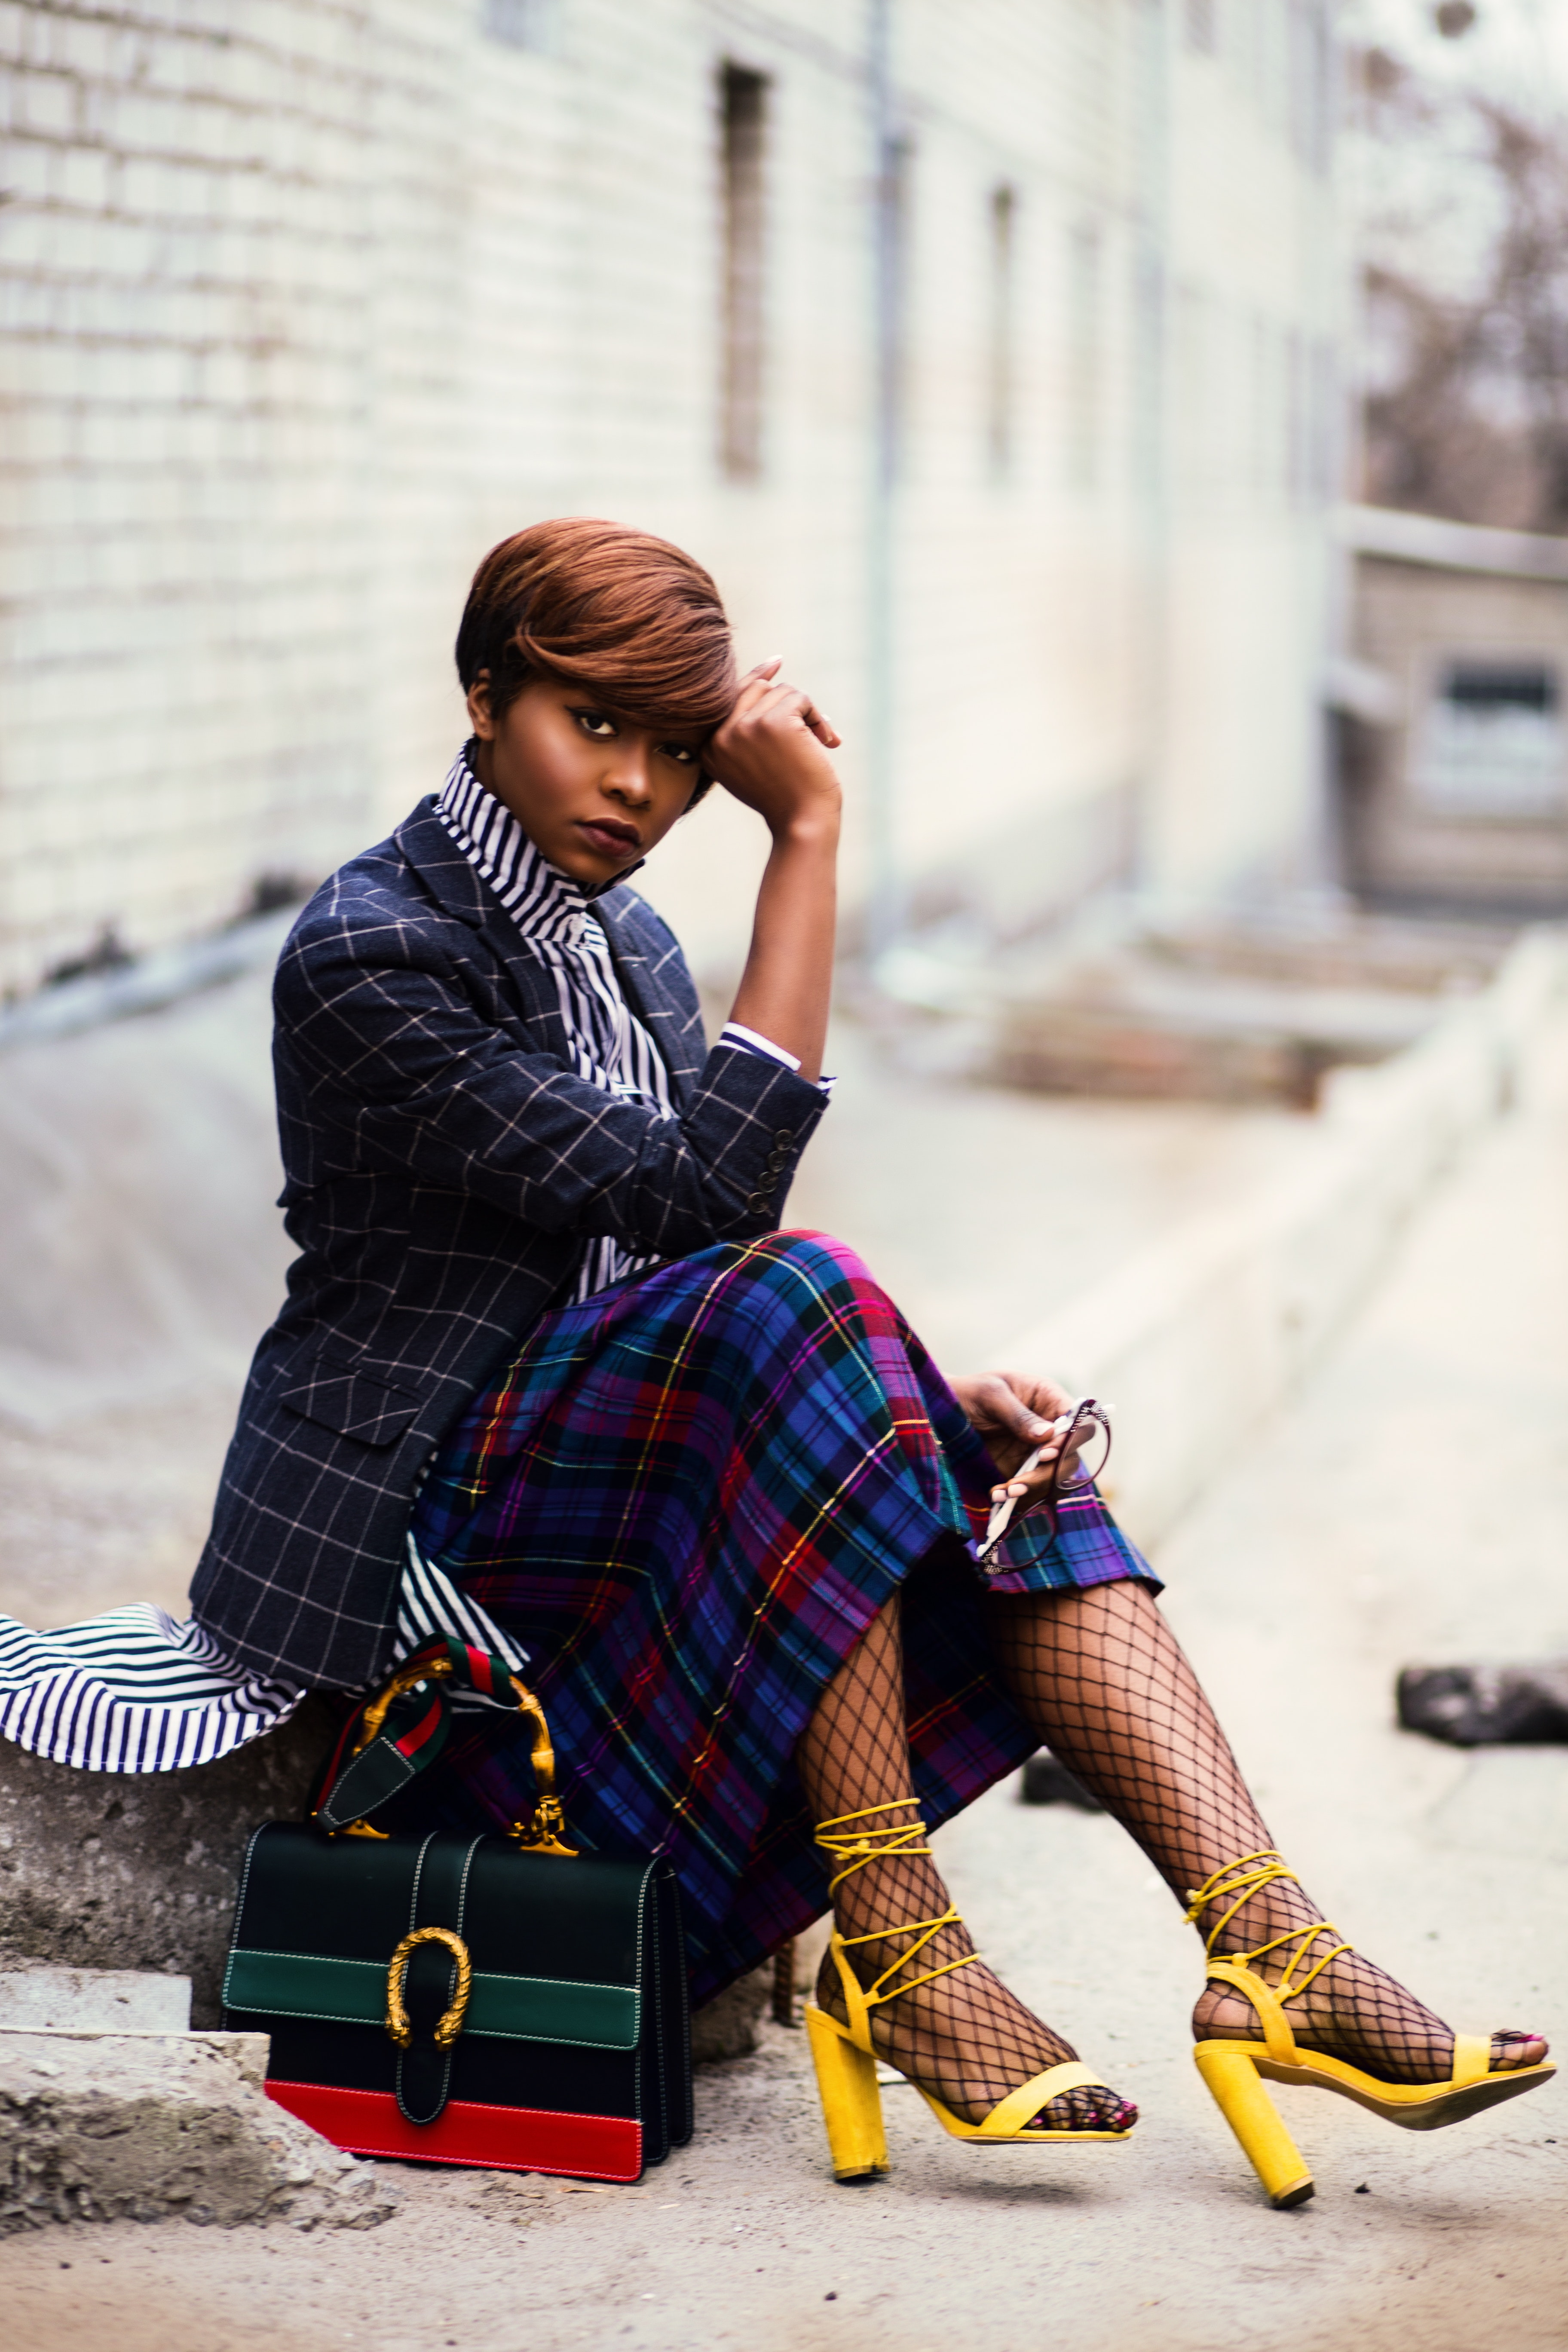 Woman Wearing Black and Grey Tattersall Blazer and Multicolored Plaid Skirt With Black Mesh Stocking and Yellow Chunky Heeled Sandals Sitting on Grey Concrete Pathway, Bag, Sitting, Outside, Person, HQ Photo